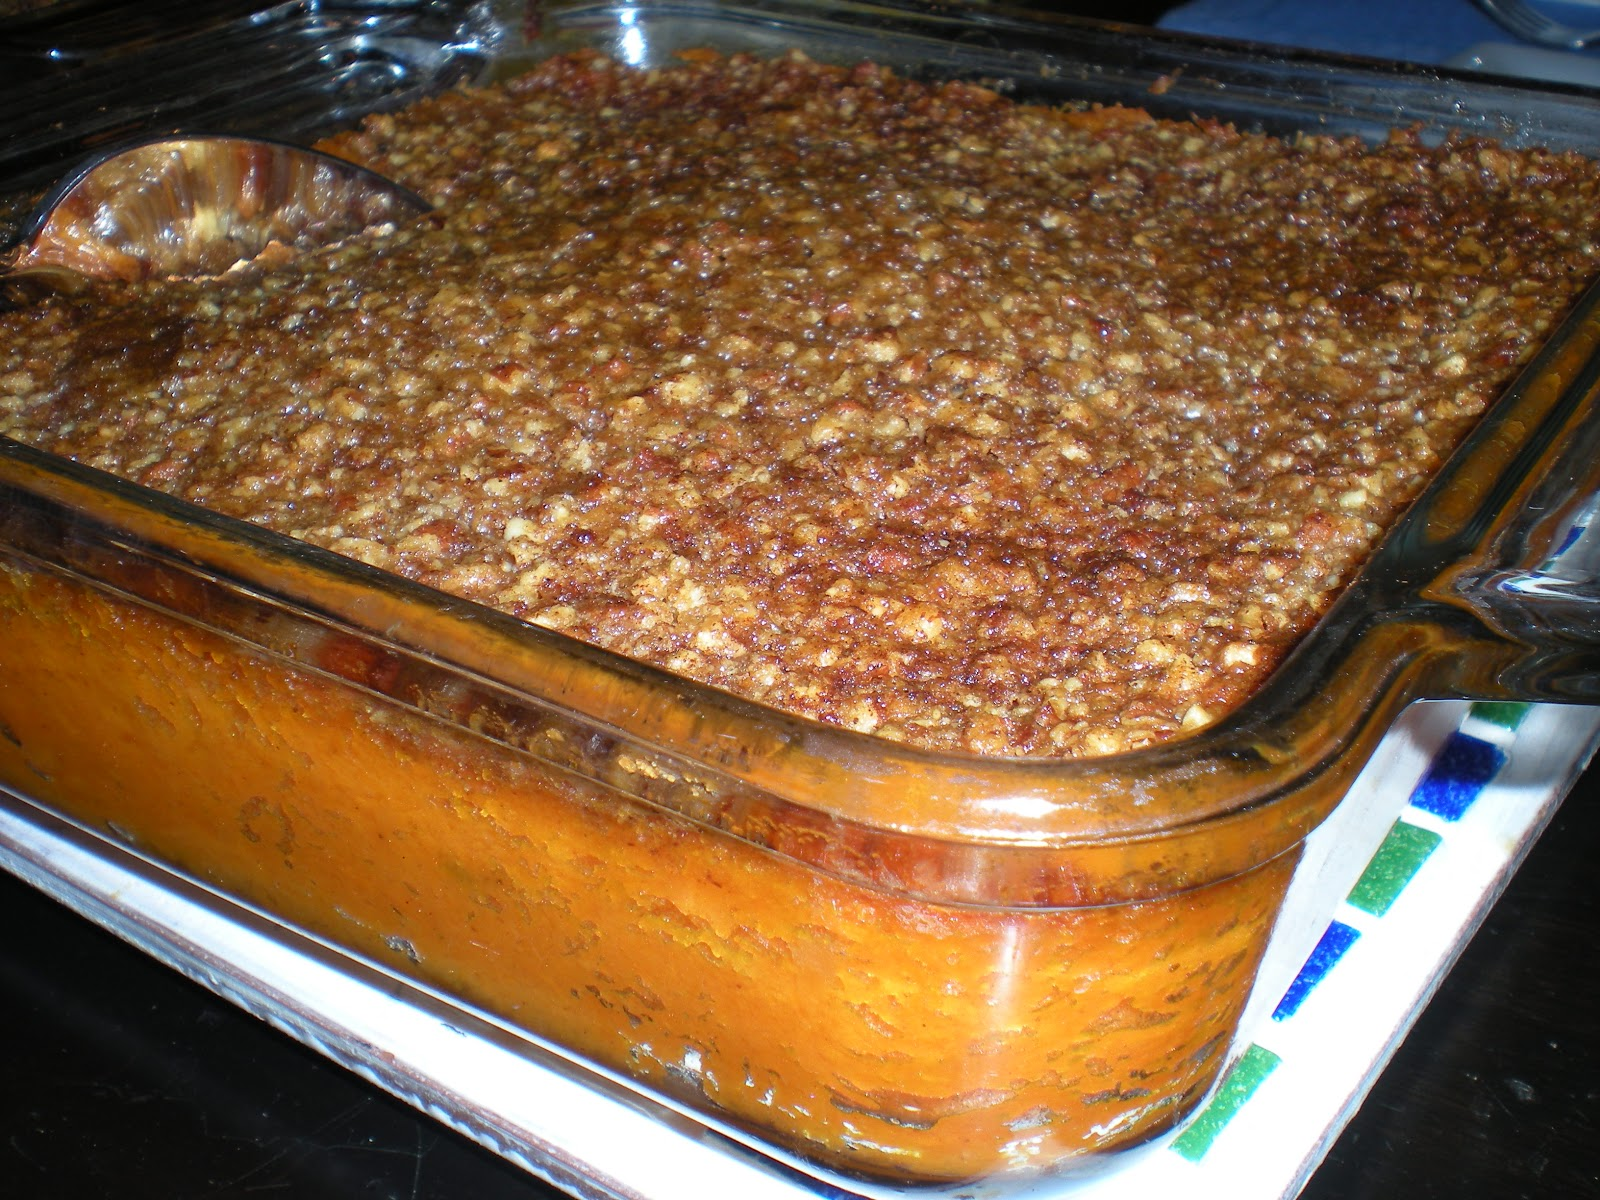 Ca-Meals: The Not-So Famous Dave's Sweet Potato Casserole